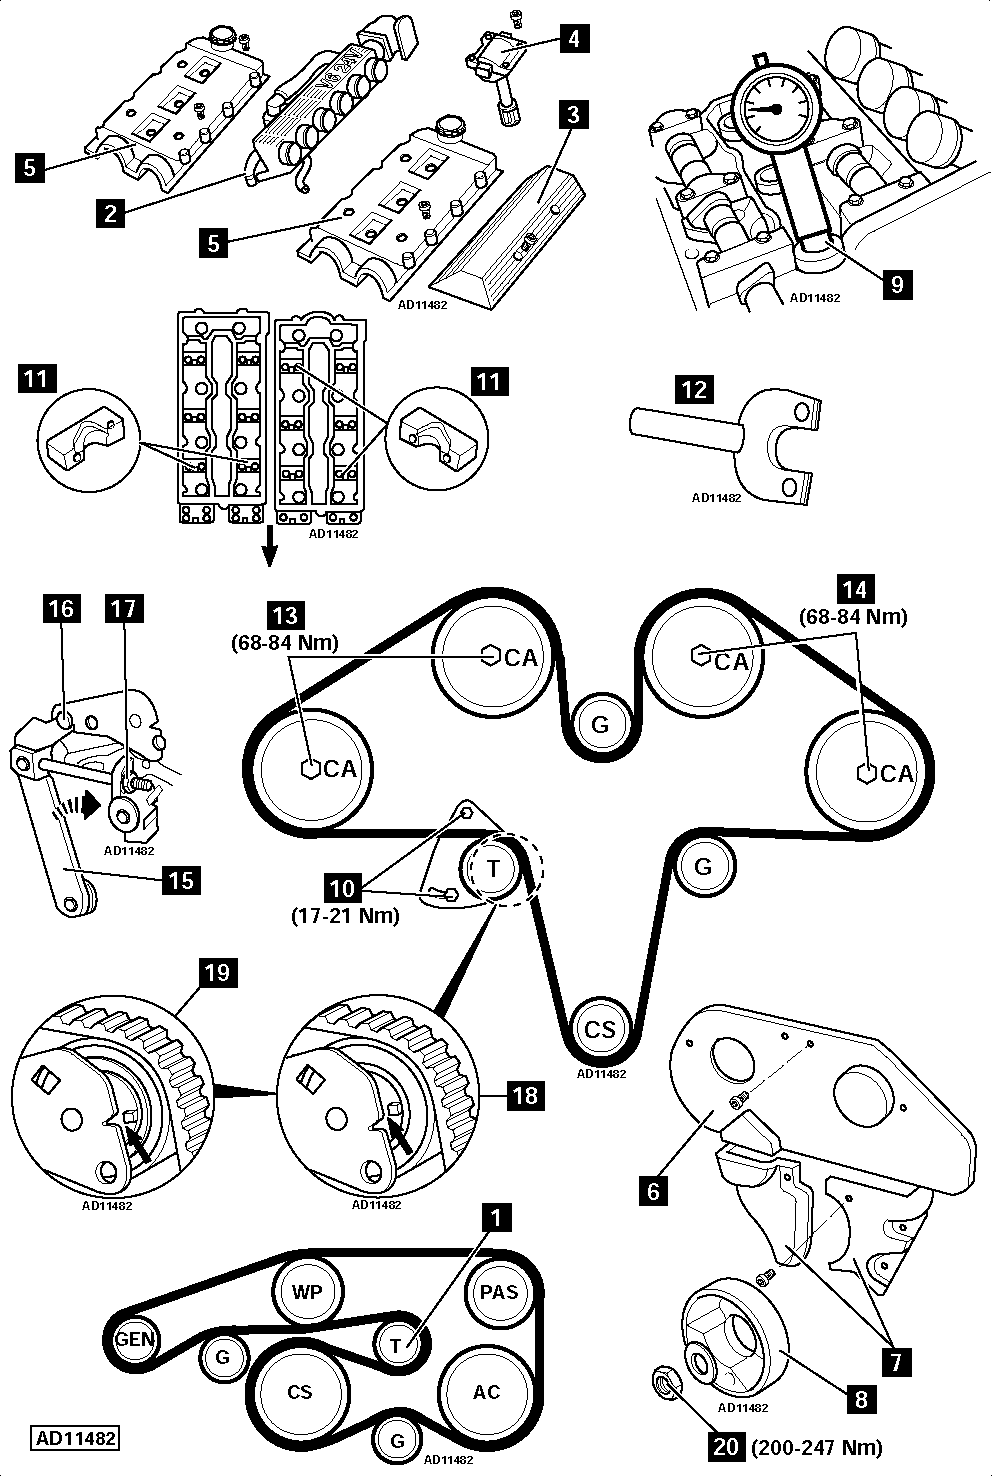 How-to-Replace-timing-belt-on-Alfa-Romeo-156-3.2-GTA-2002-2005